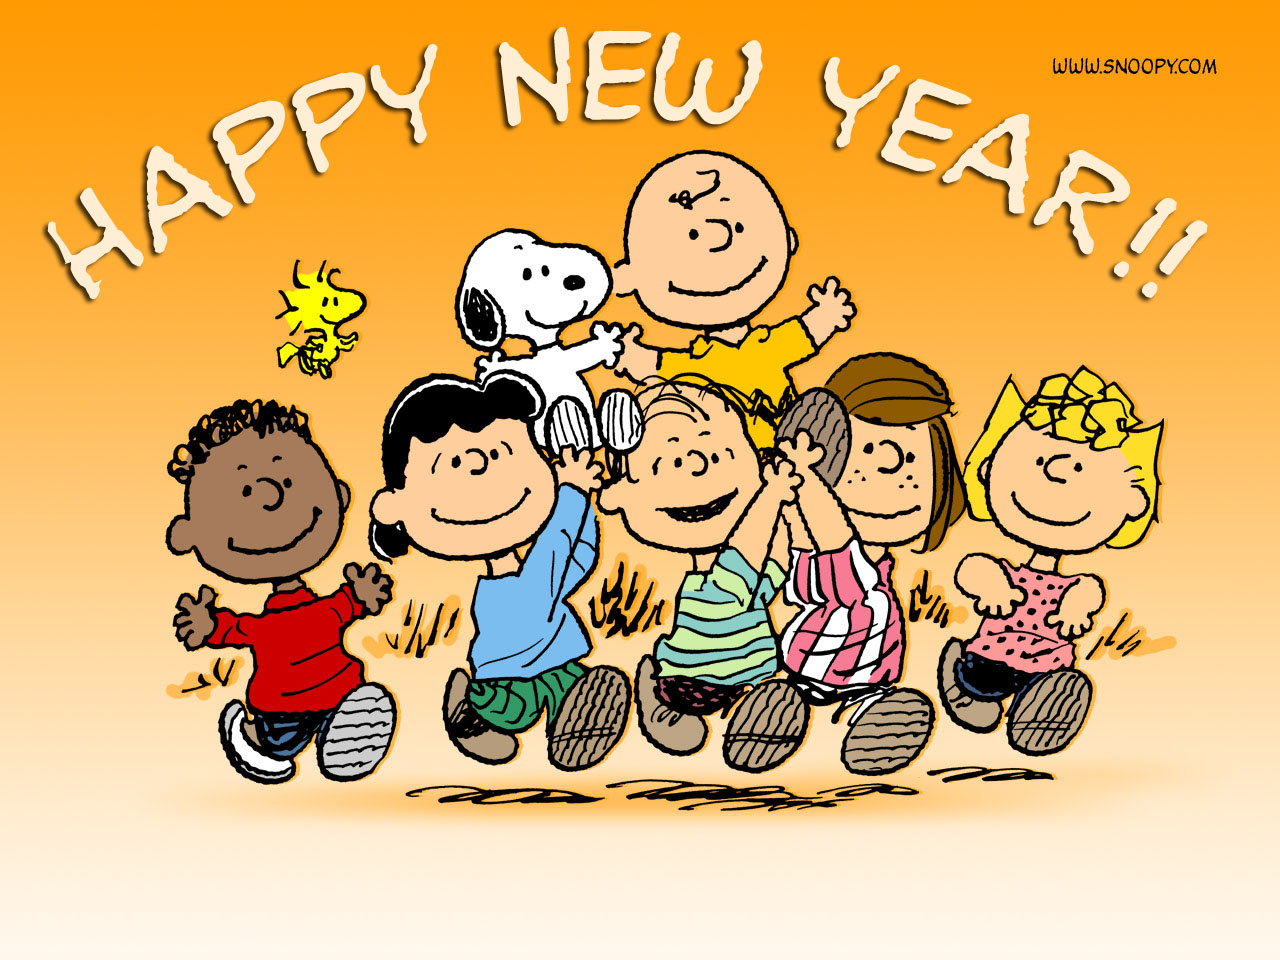 new year sms 2012 free sms sms message love sms funny sms sms text . 1280 x 960.Funny Happy Free New Year Text Messages